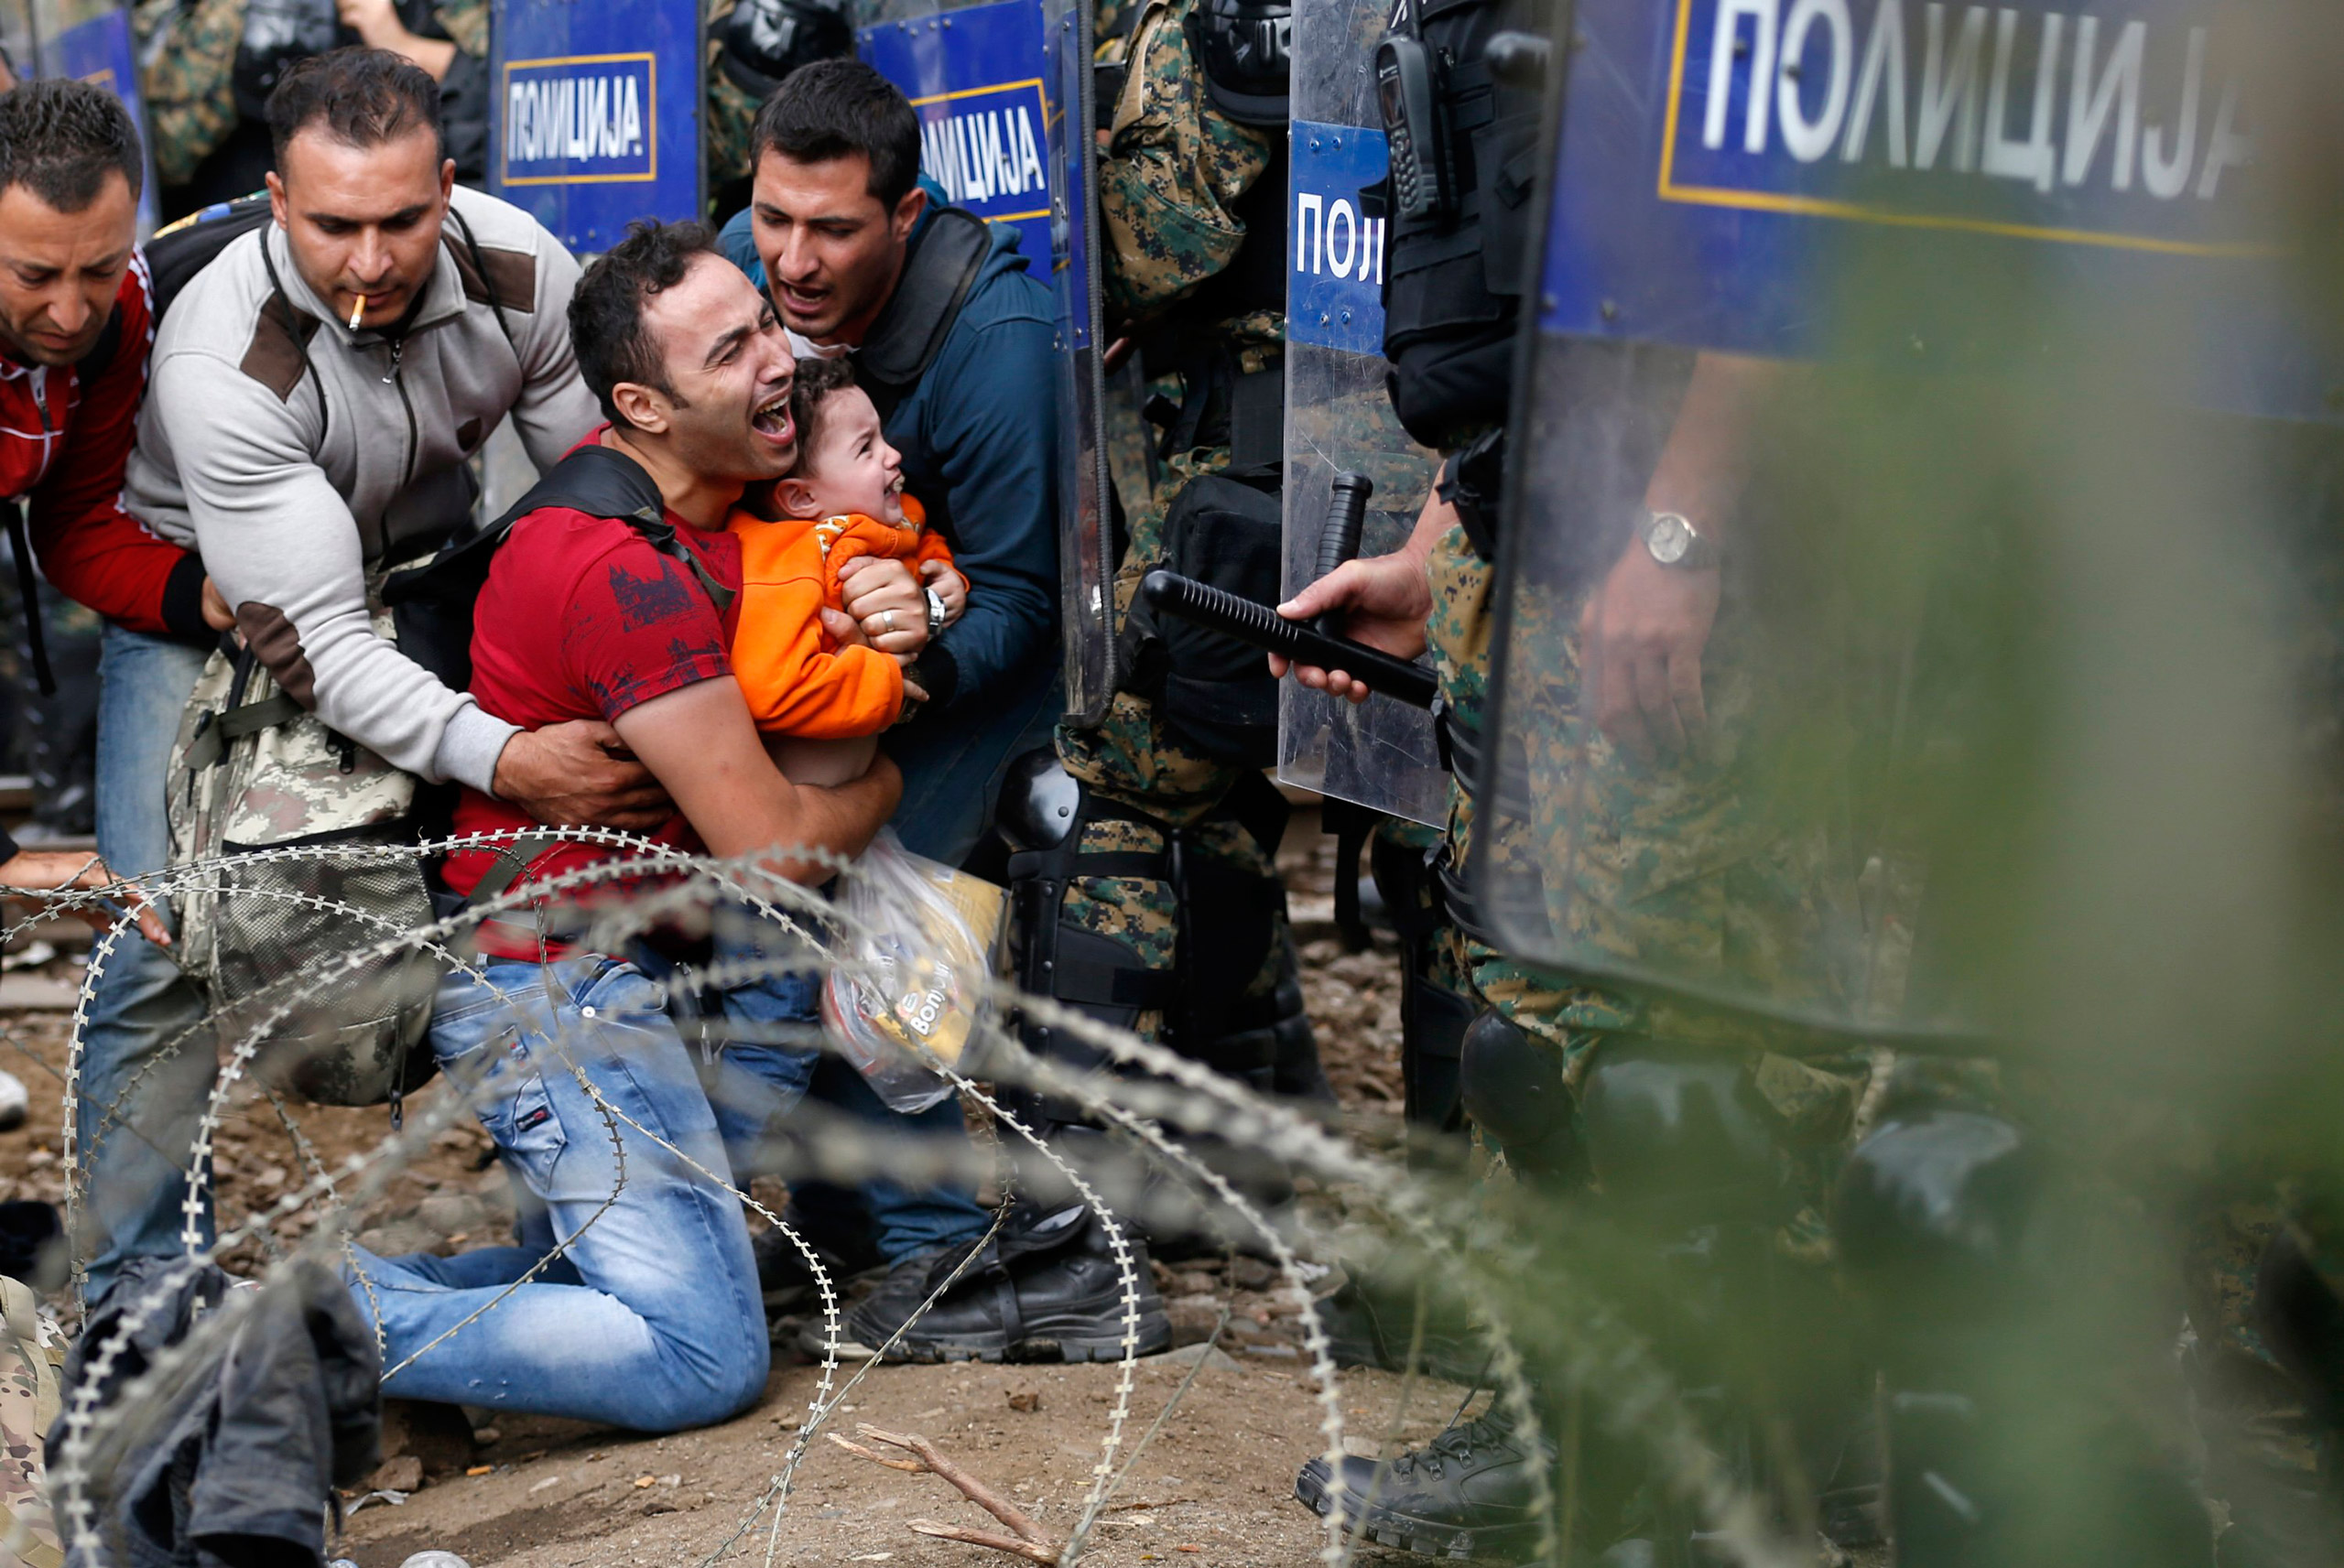 Men help a fellow migrant as they are stuck between Macedonian riot police officers and other migrants during a clash near the border train station of Idomeni, northern Greece. They are waiting to be allowed by the Macedonian police to cross the border from Greece to Macedonia, on Aug. 21, 2015.